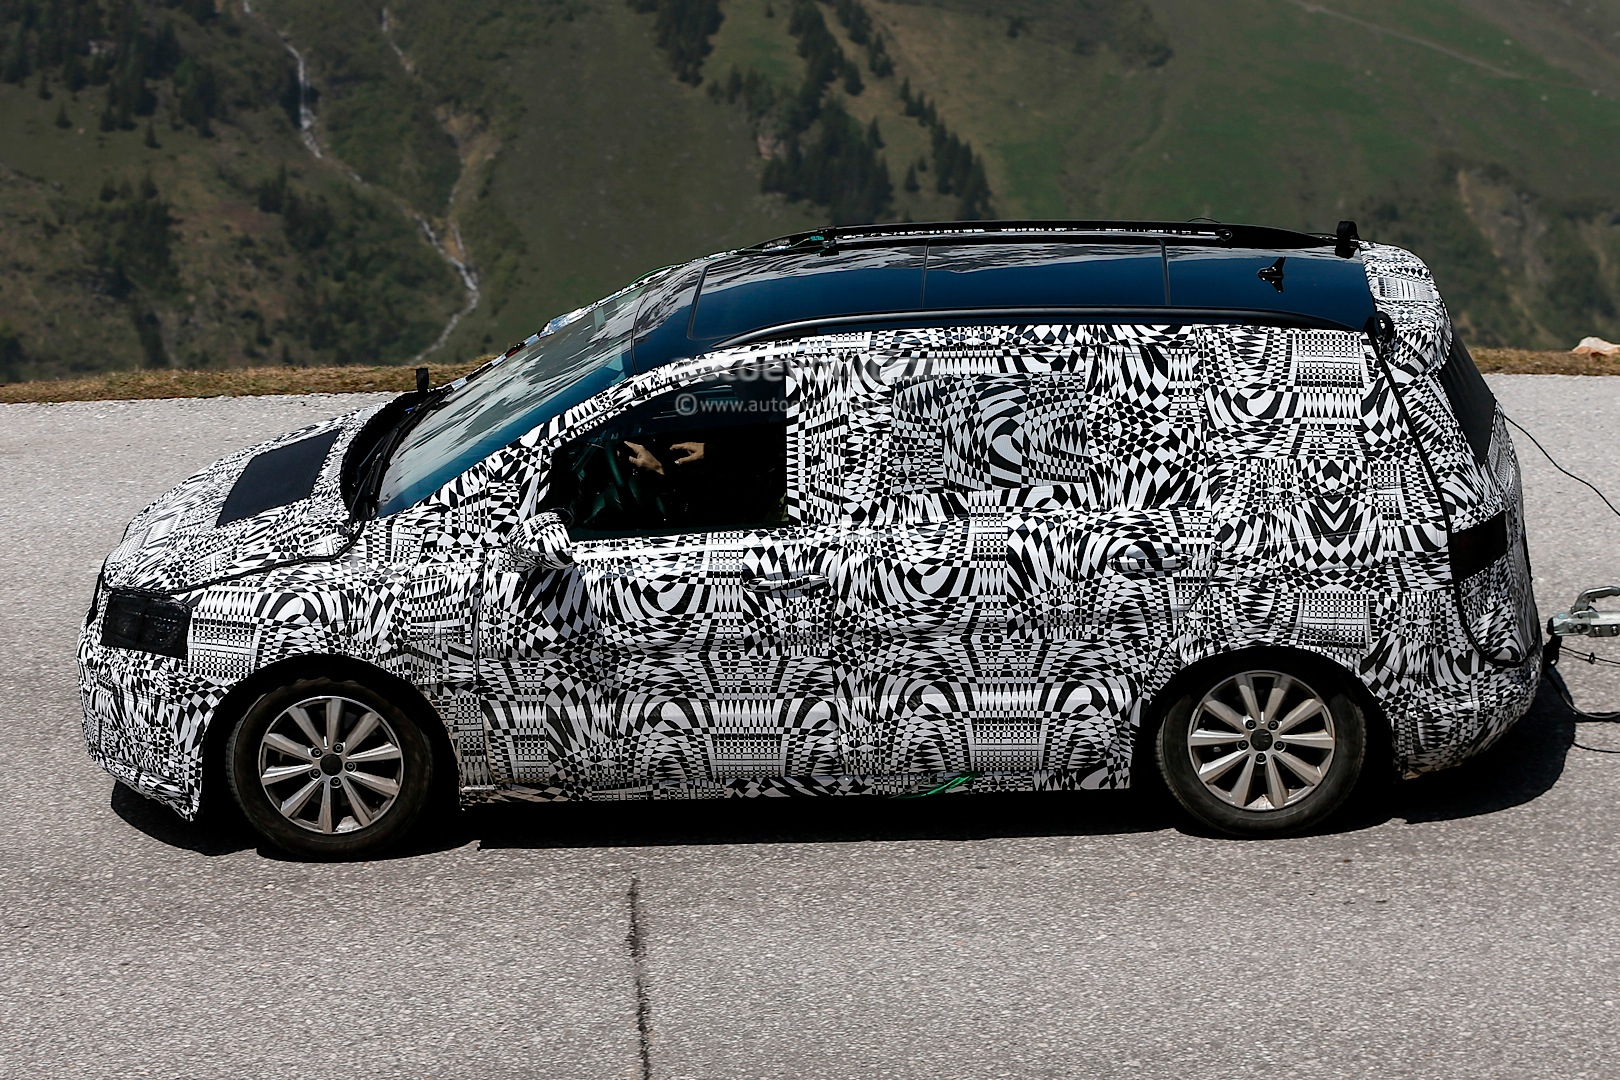 2015 Vw Touran | Autos Weblog